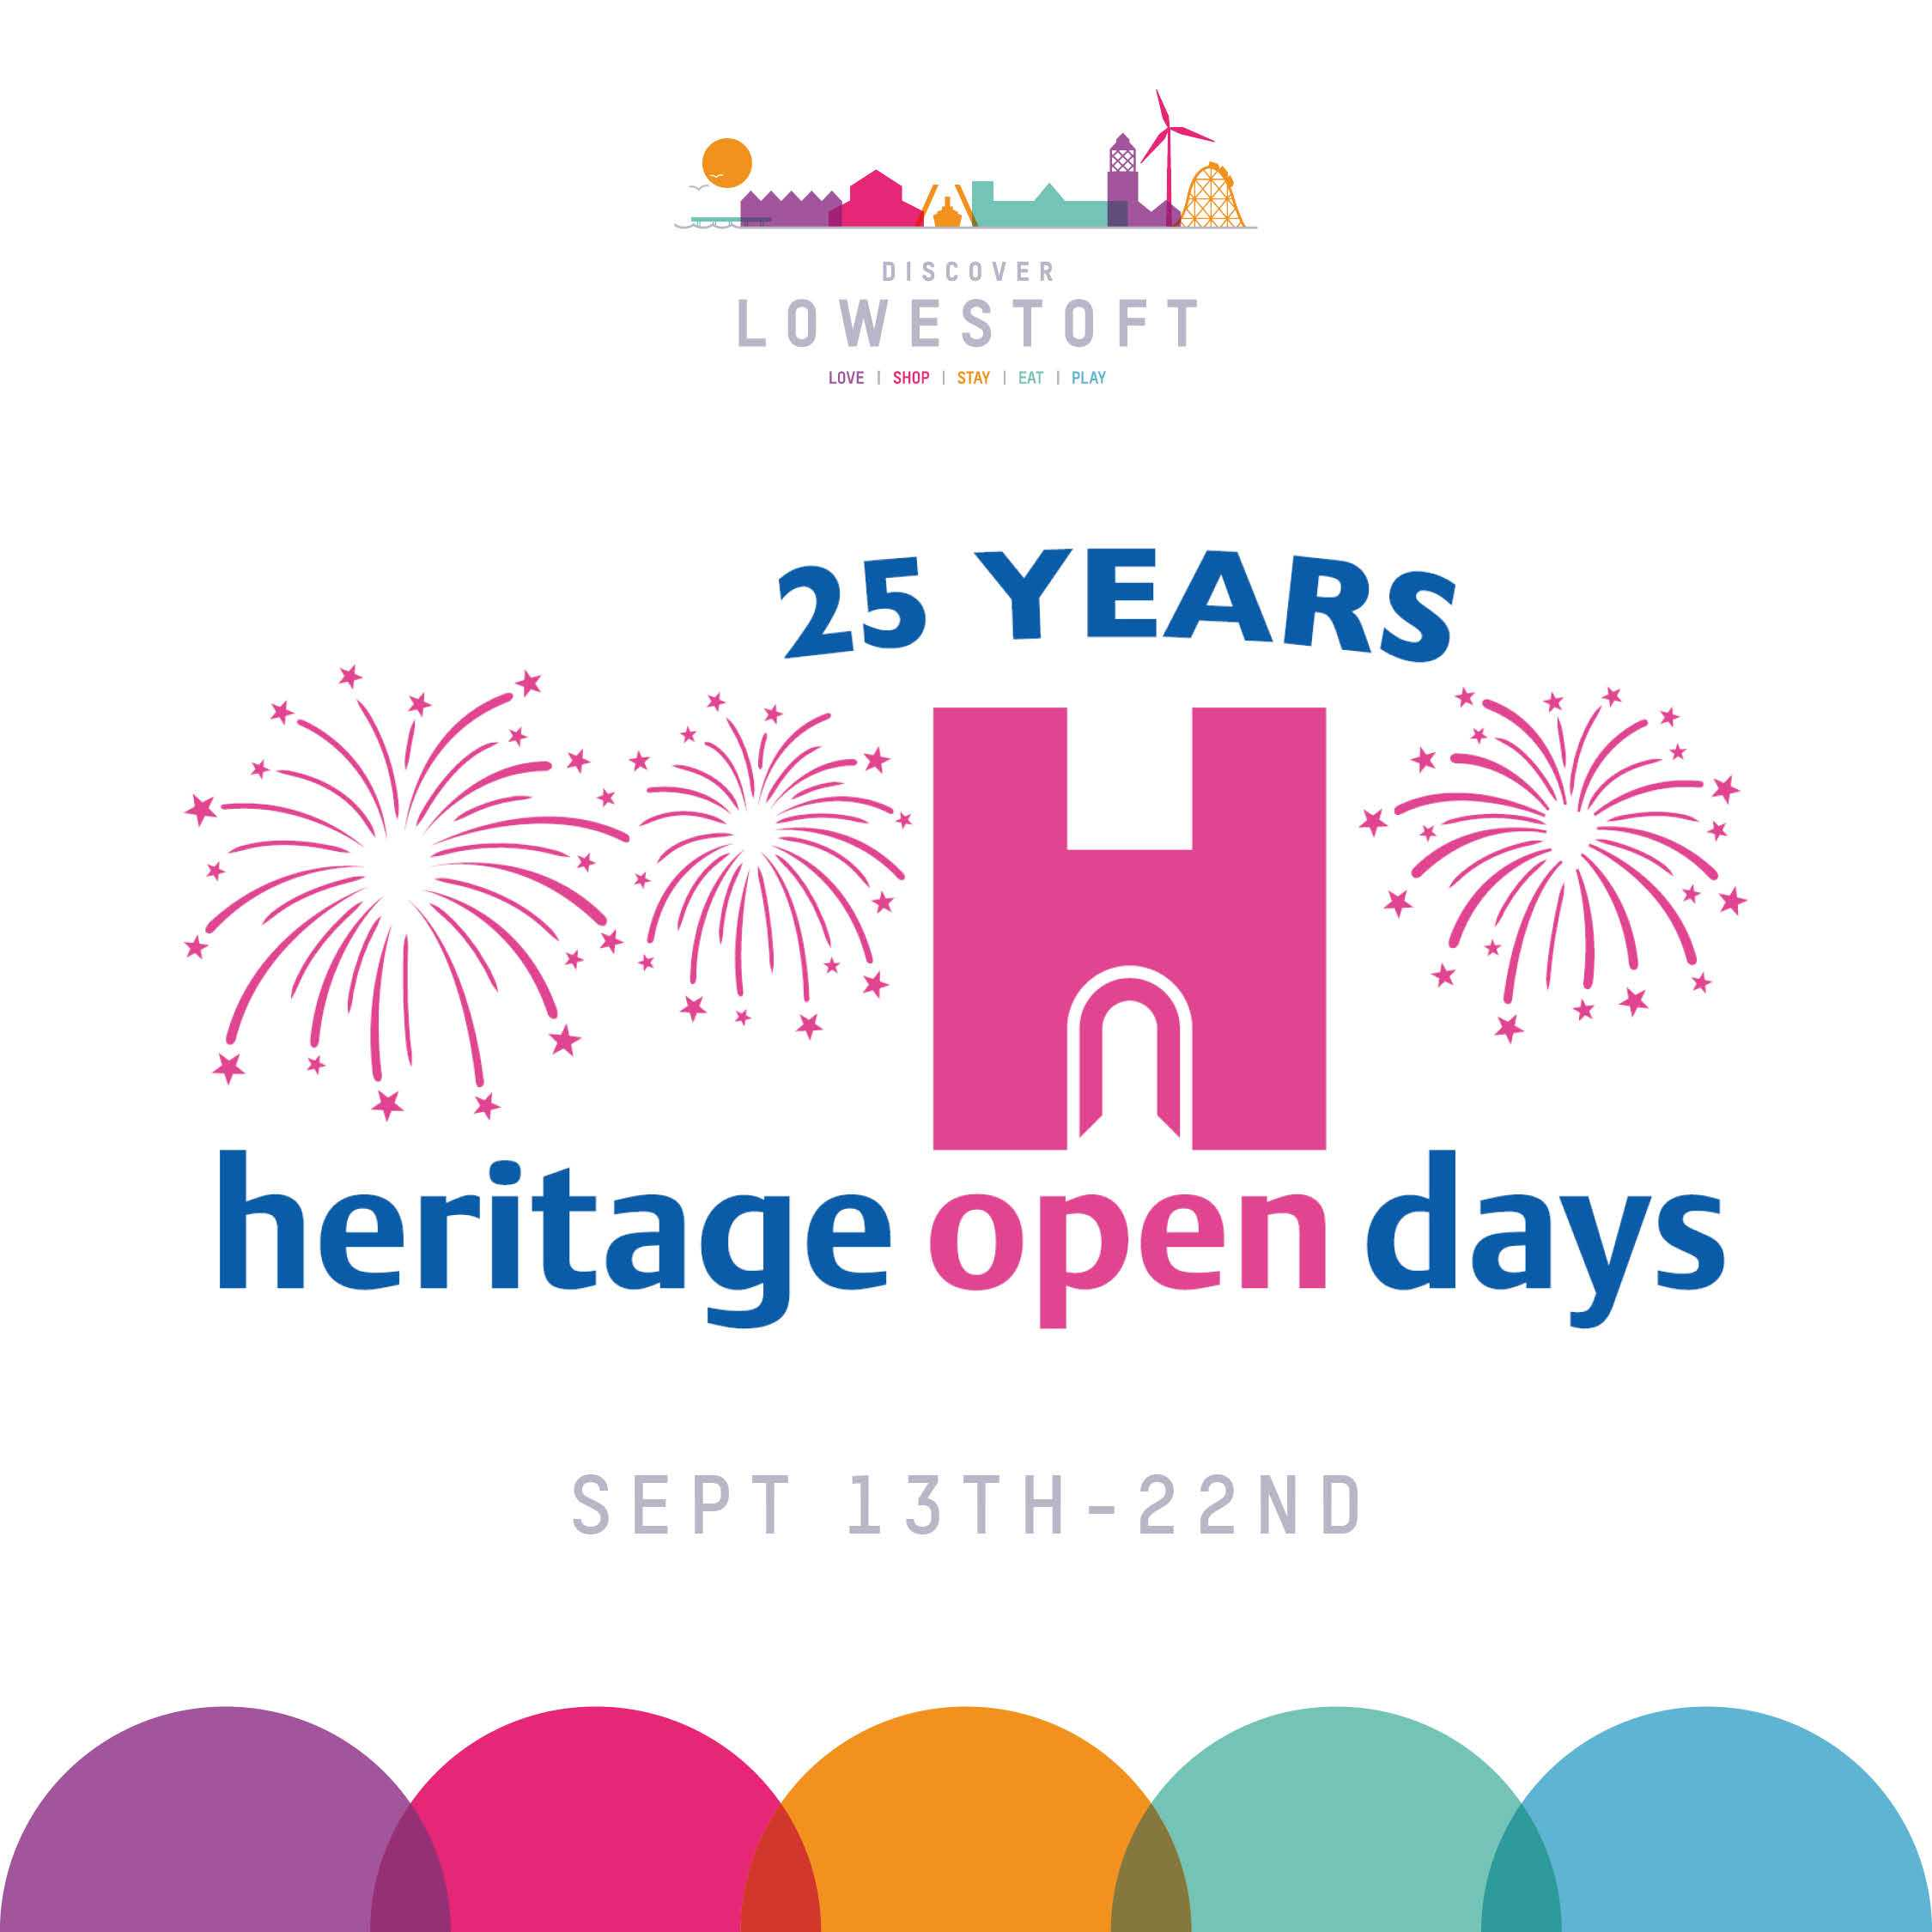 Heritage Open Days - The Lowestoft Scores Walking Tours Image